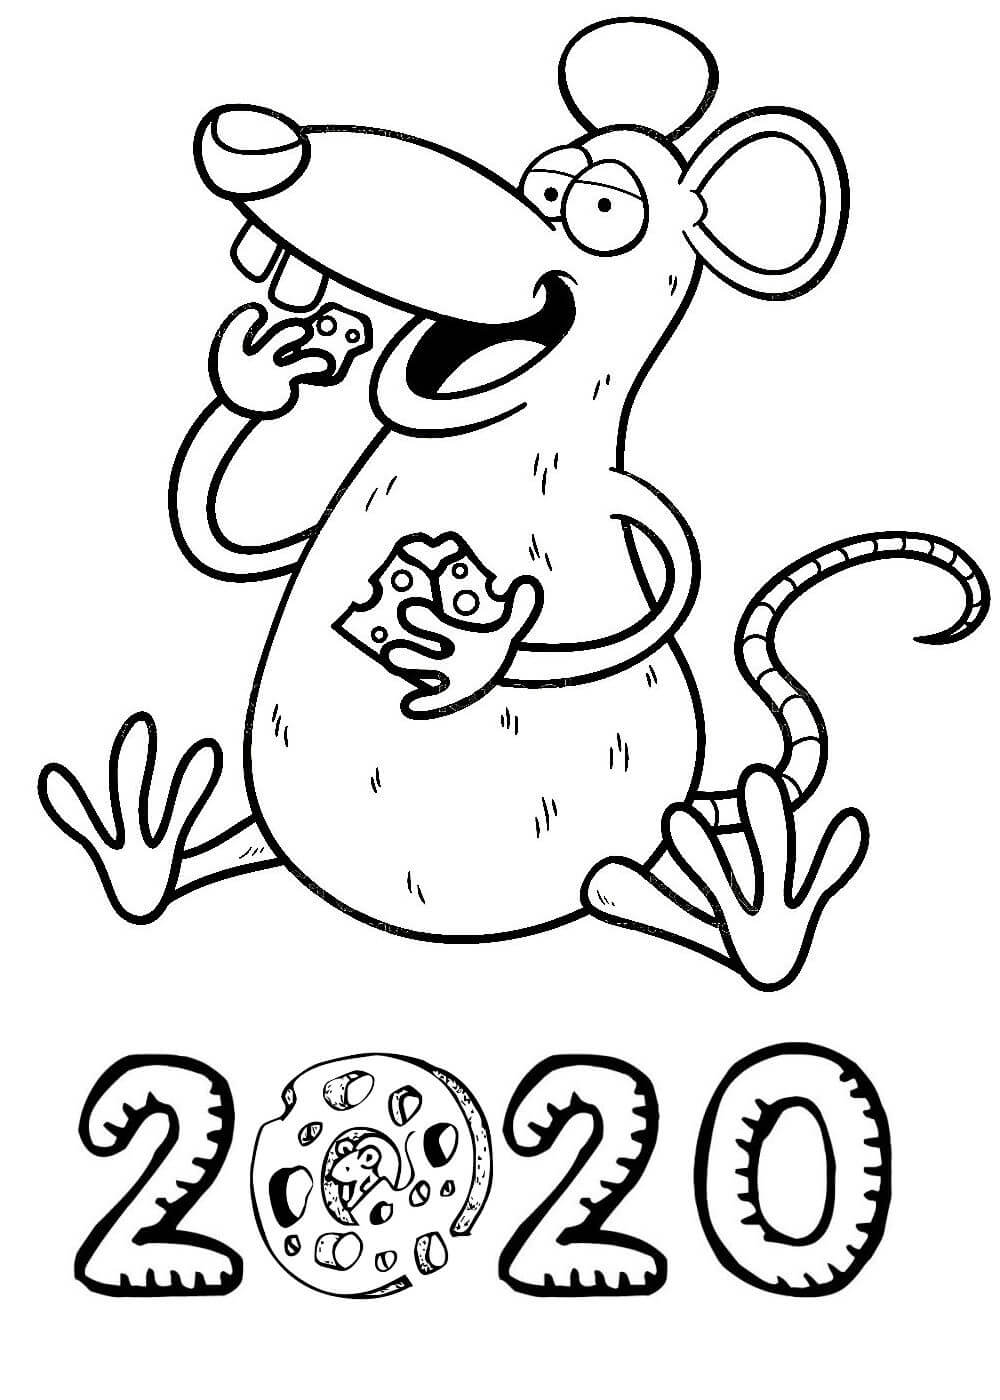 coloring pages 2020 new years 2020 coloring pages by the brighter rewriter tpt coloring pages 2020